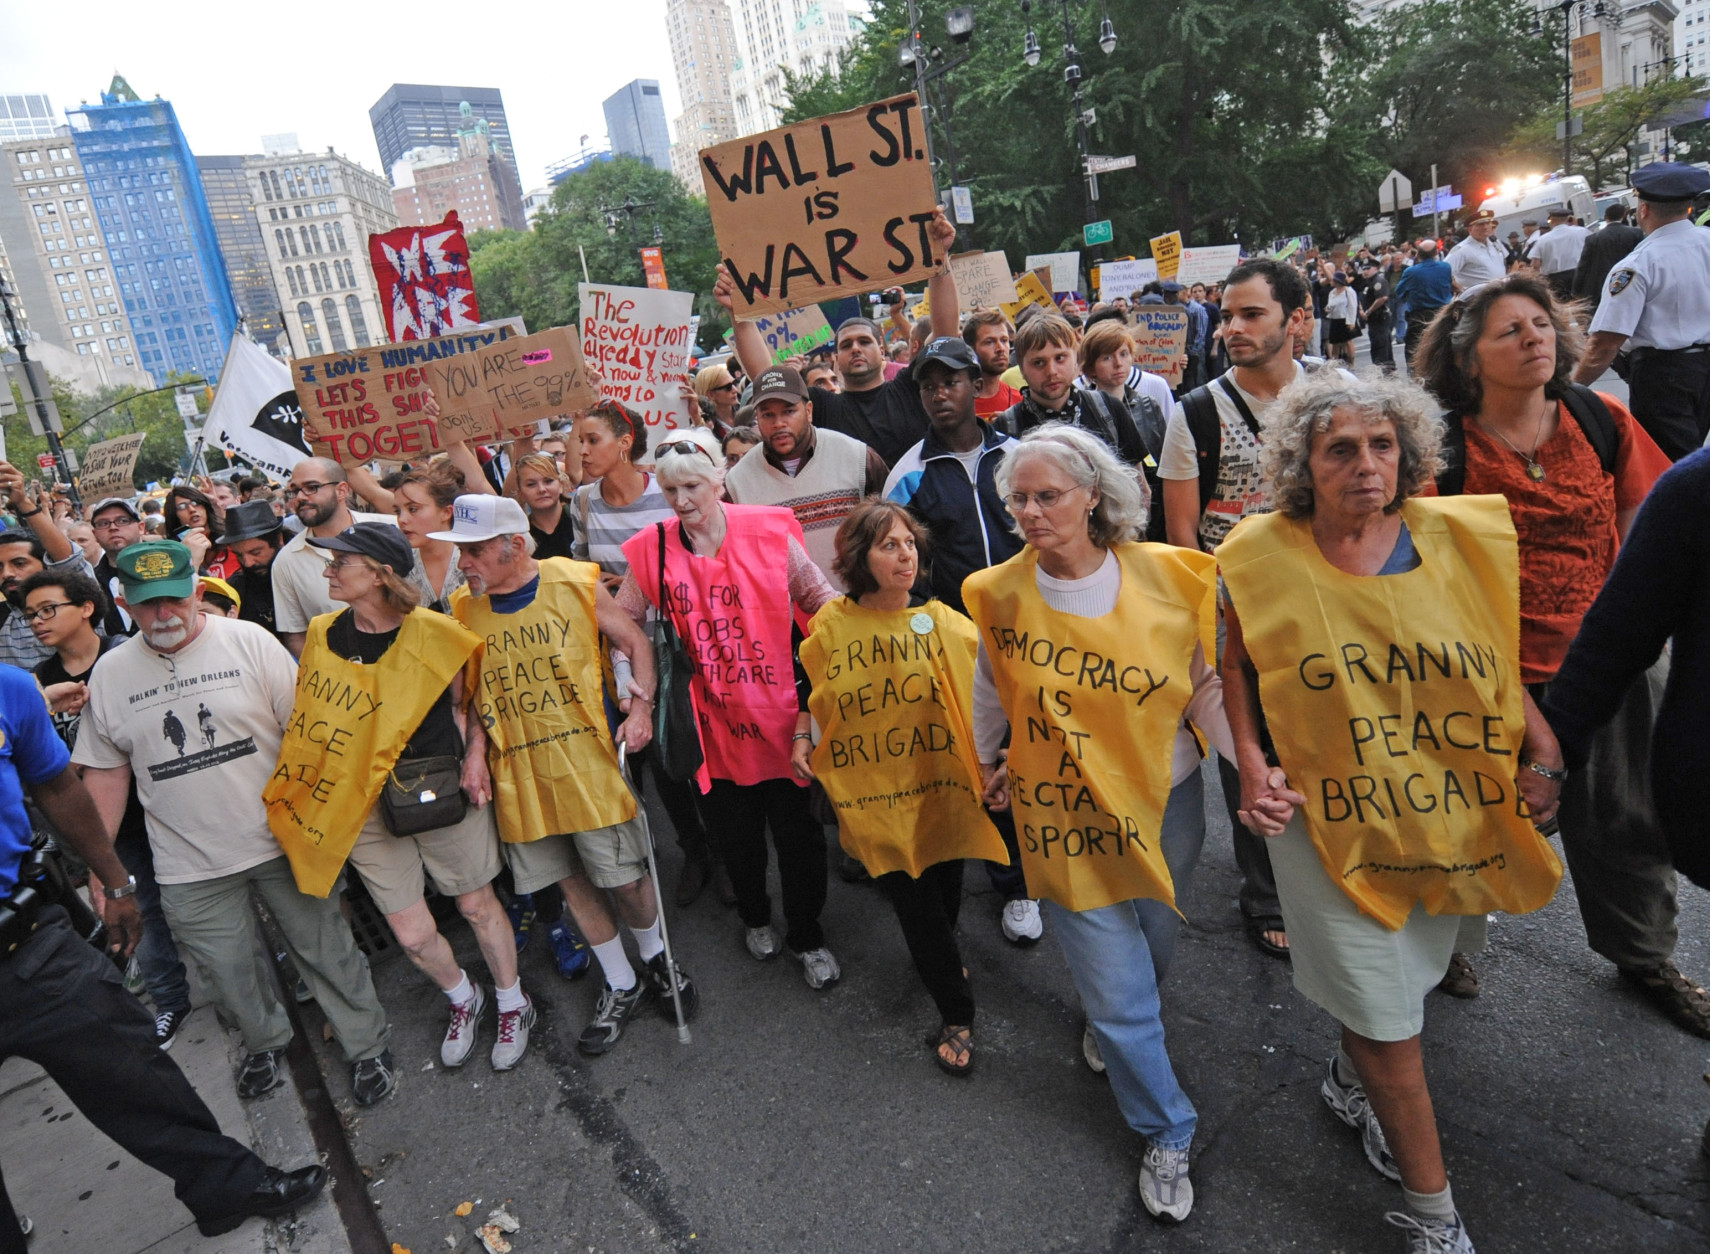 On this date in 2011, a demonstration calling itself Occupy Wall Street began in New York, prompting similar protests around the U.S. and the world. (AP Photo/ Louis Lanzano)